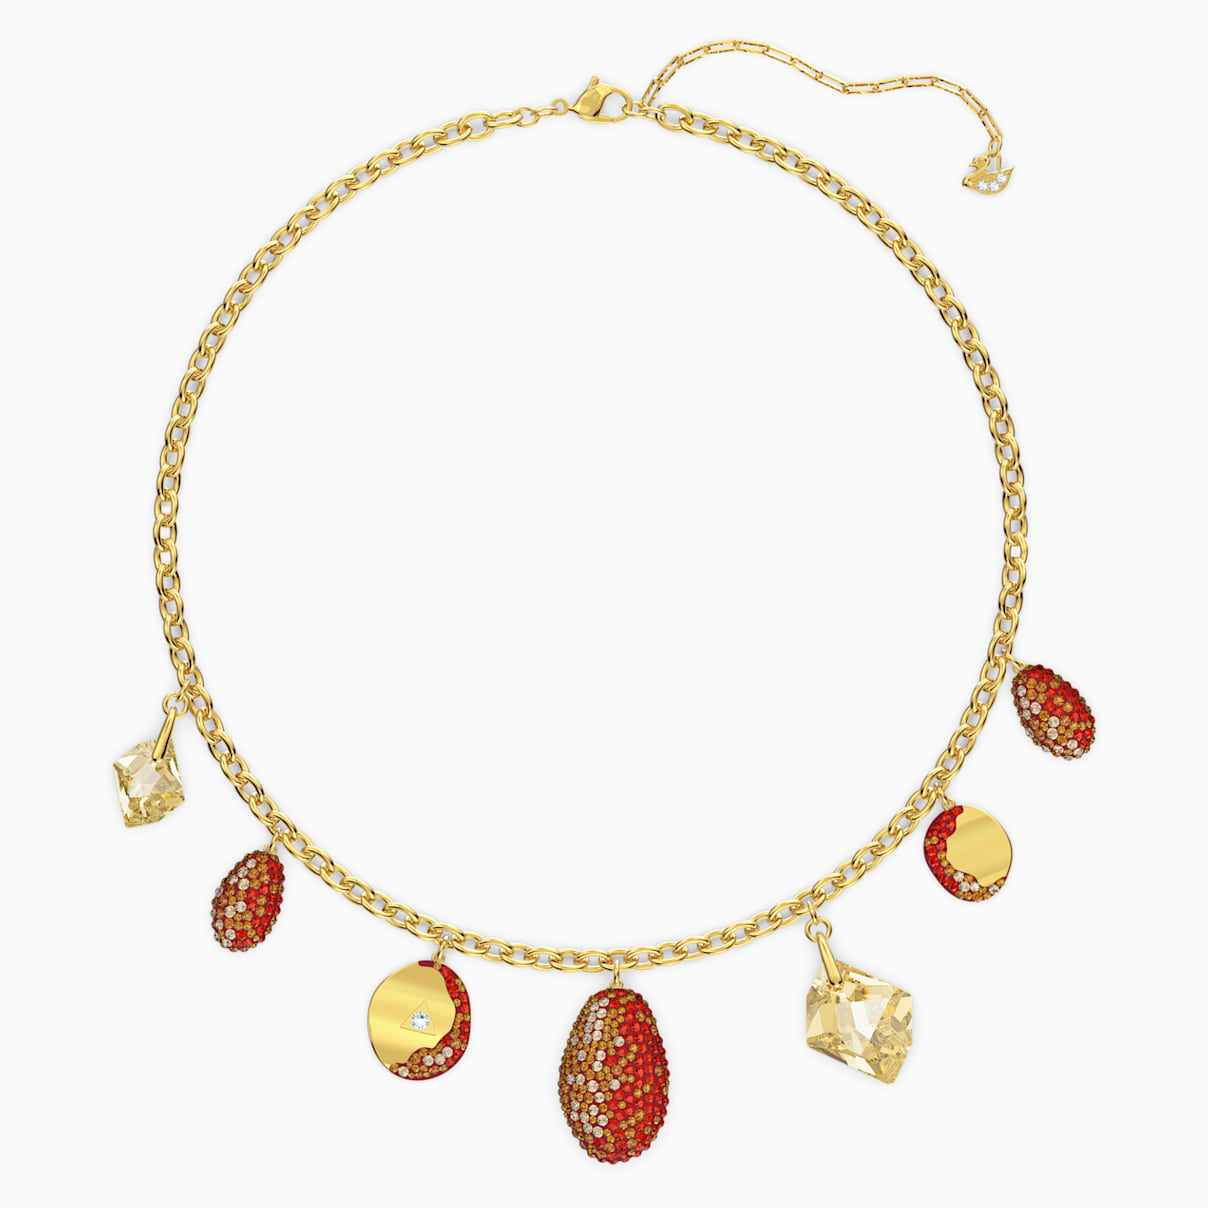 Collana The Elements, rosso, mix di placcature